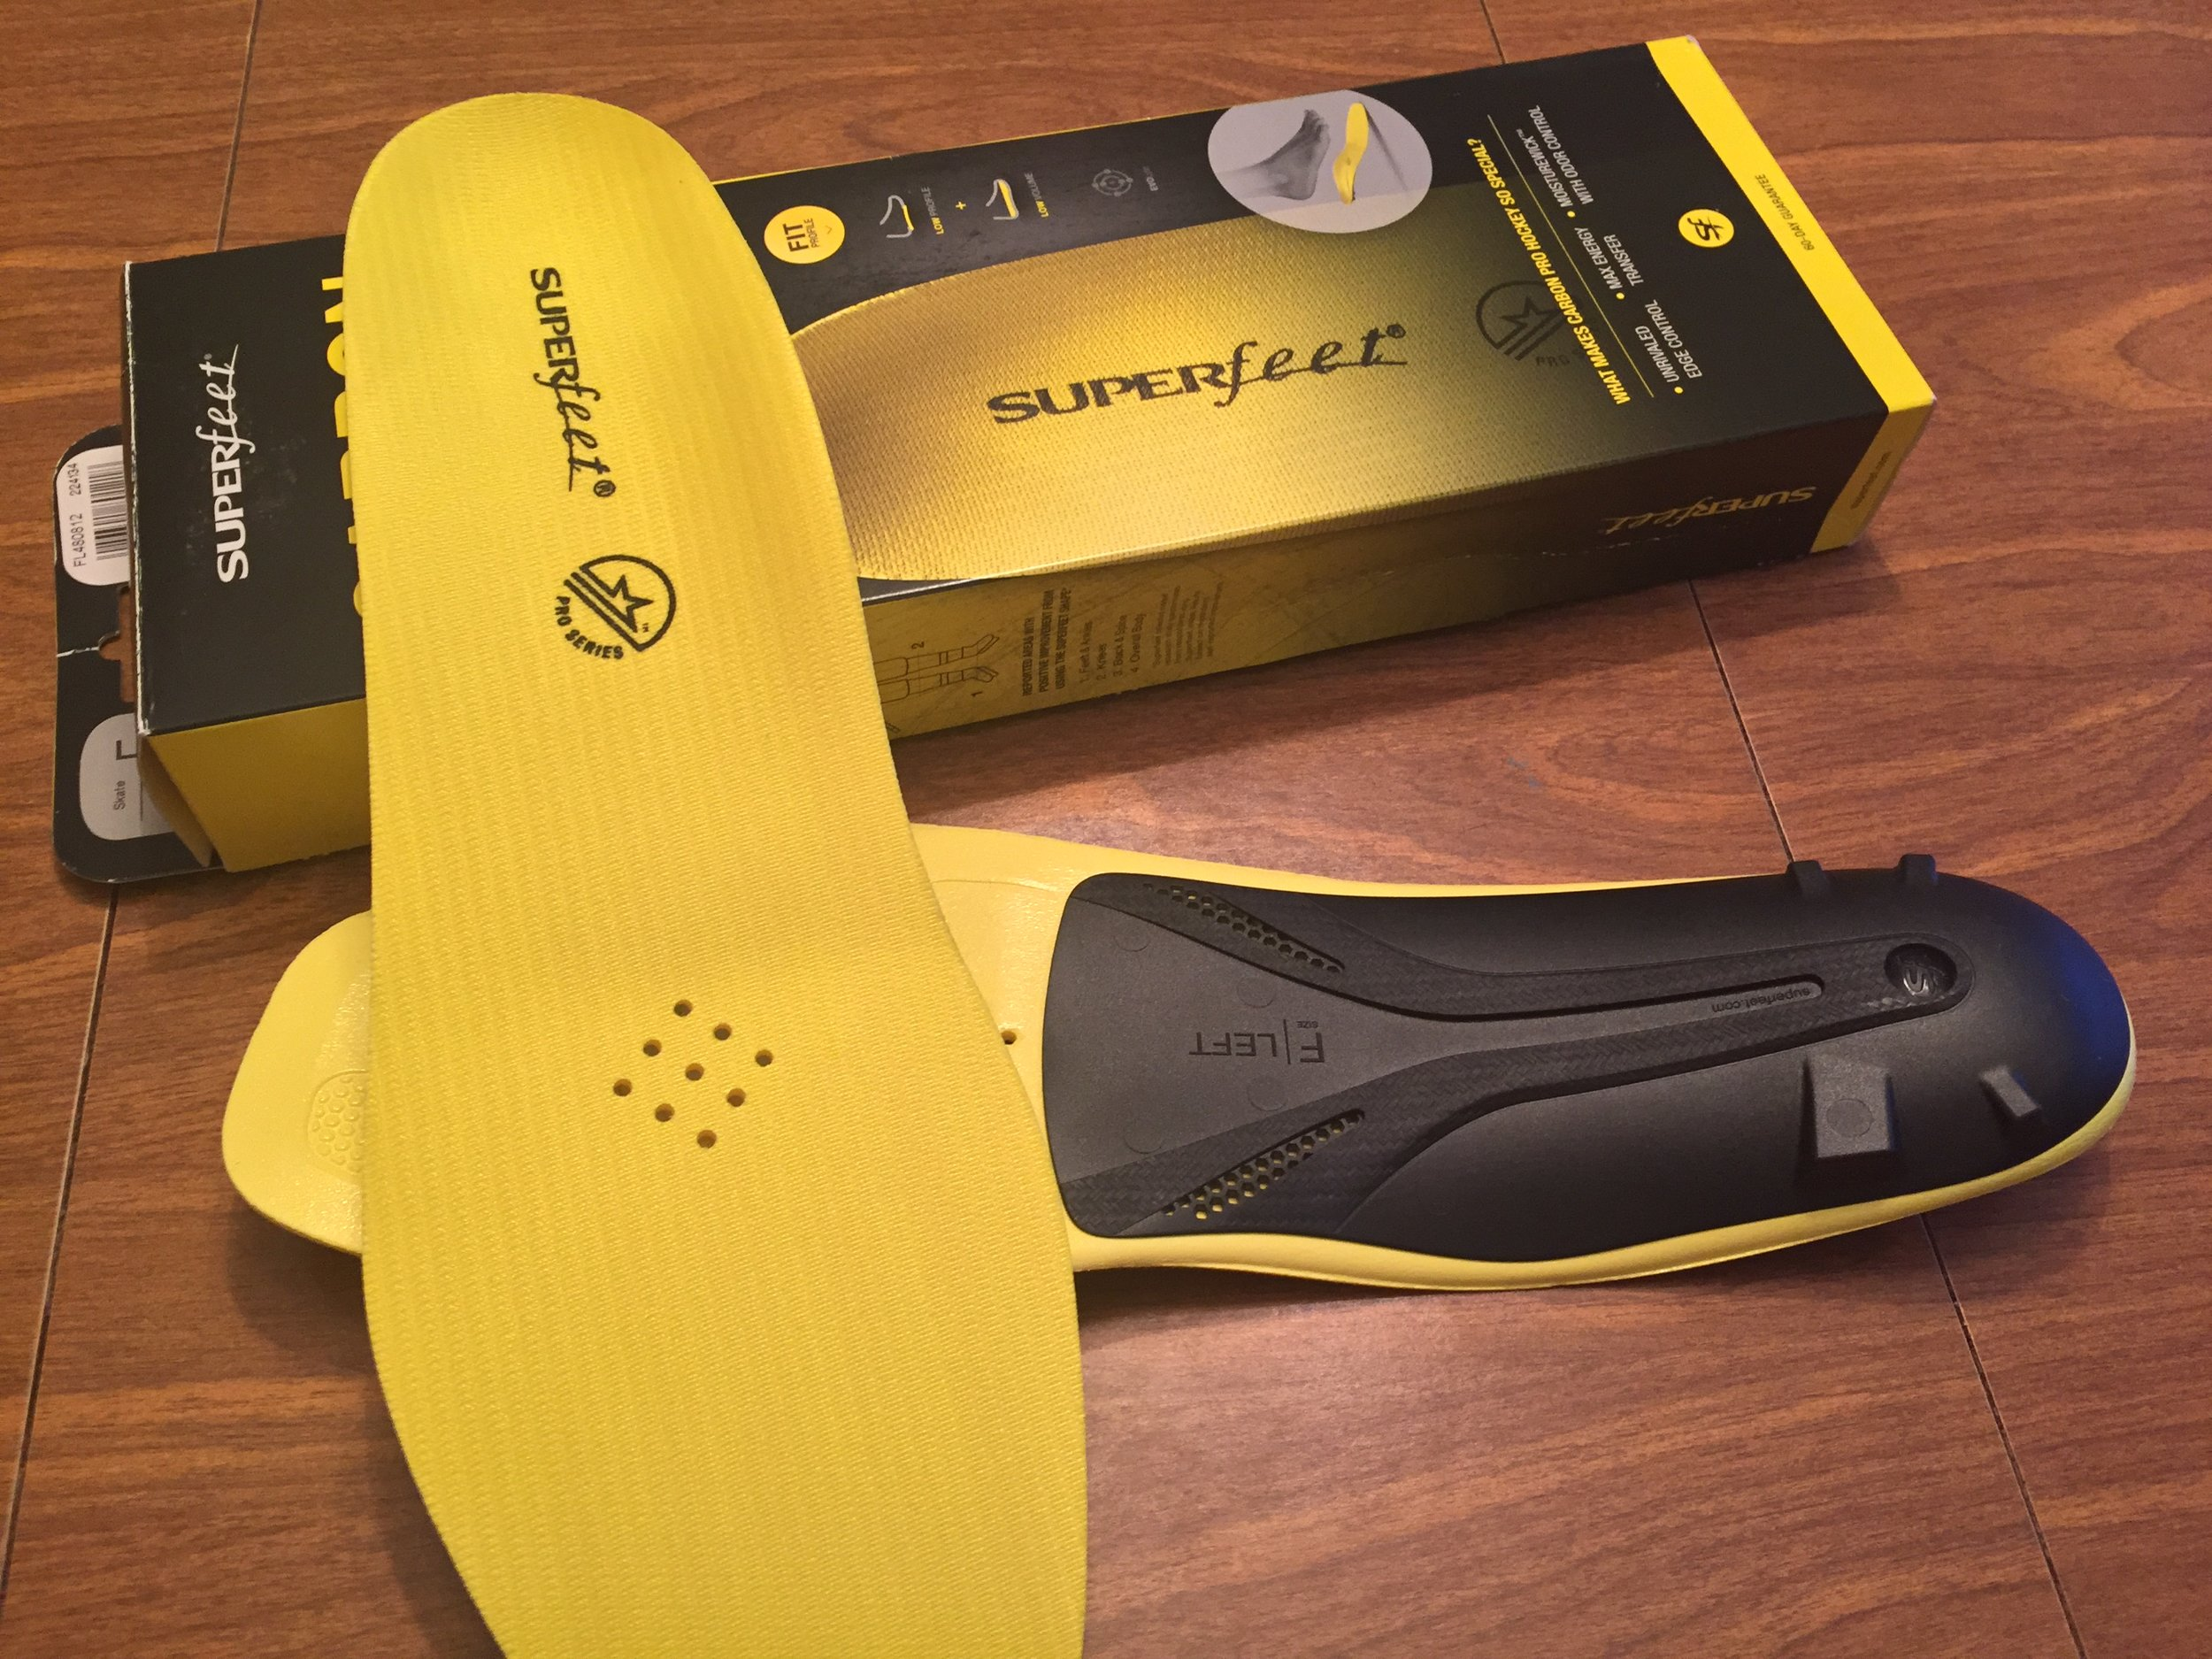 The Supefeet Carbon Pro Inserts, branded as hockey, are also recommended for cycling shoes.The black heel cup and lift creates a noticeable difference in fit.